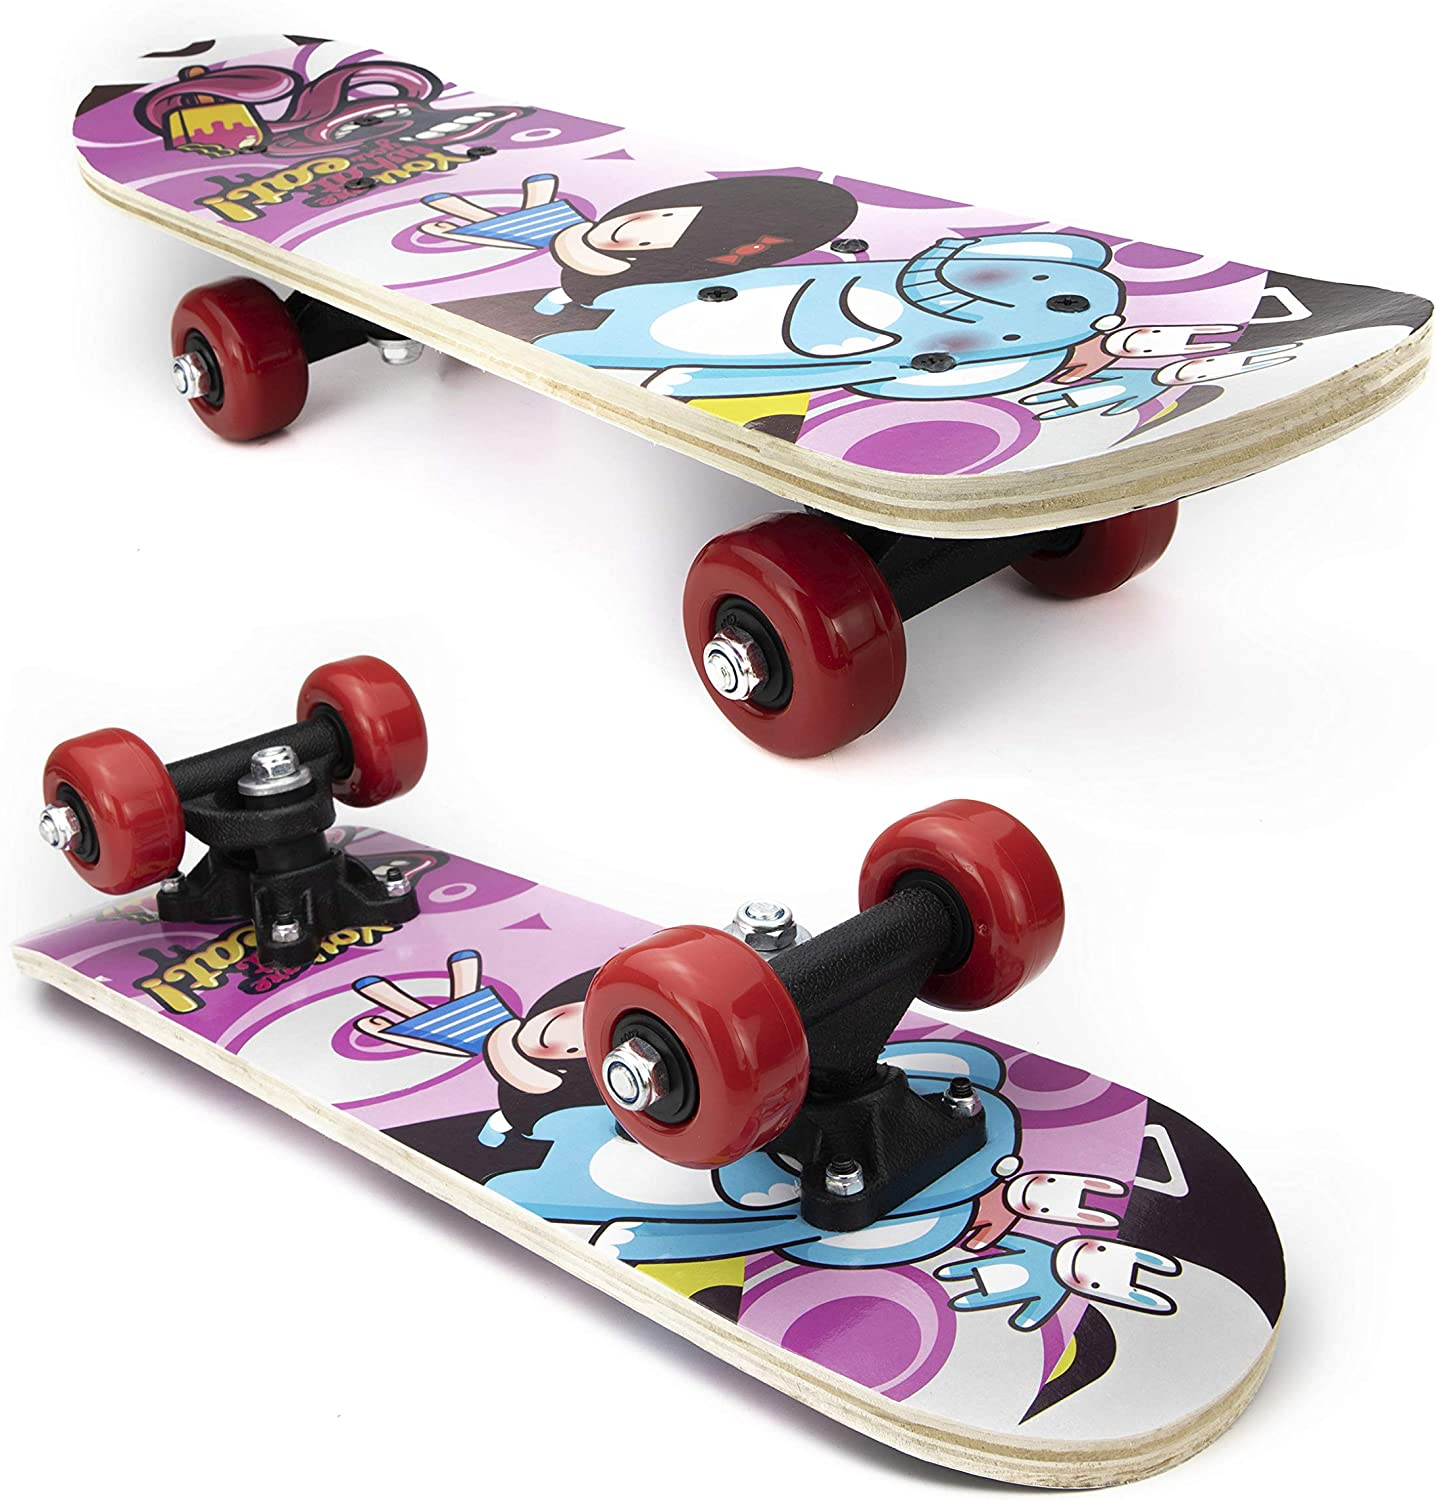 Complete Skateboards for Beginners Boys Girls Kids Youth 7 Lays Maple Deck